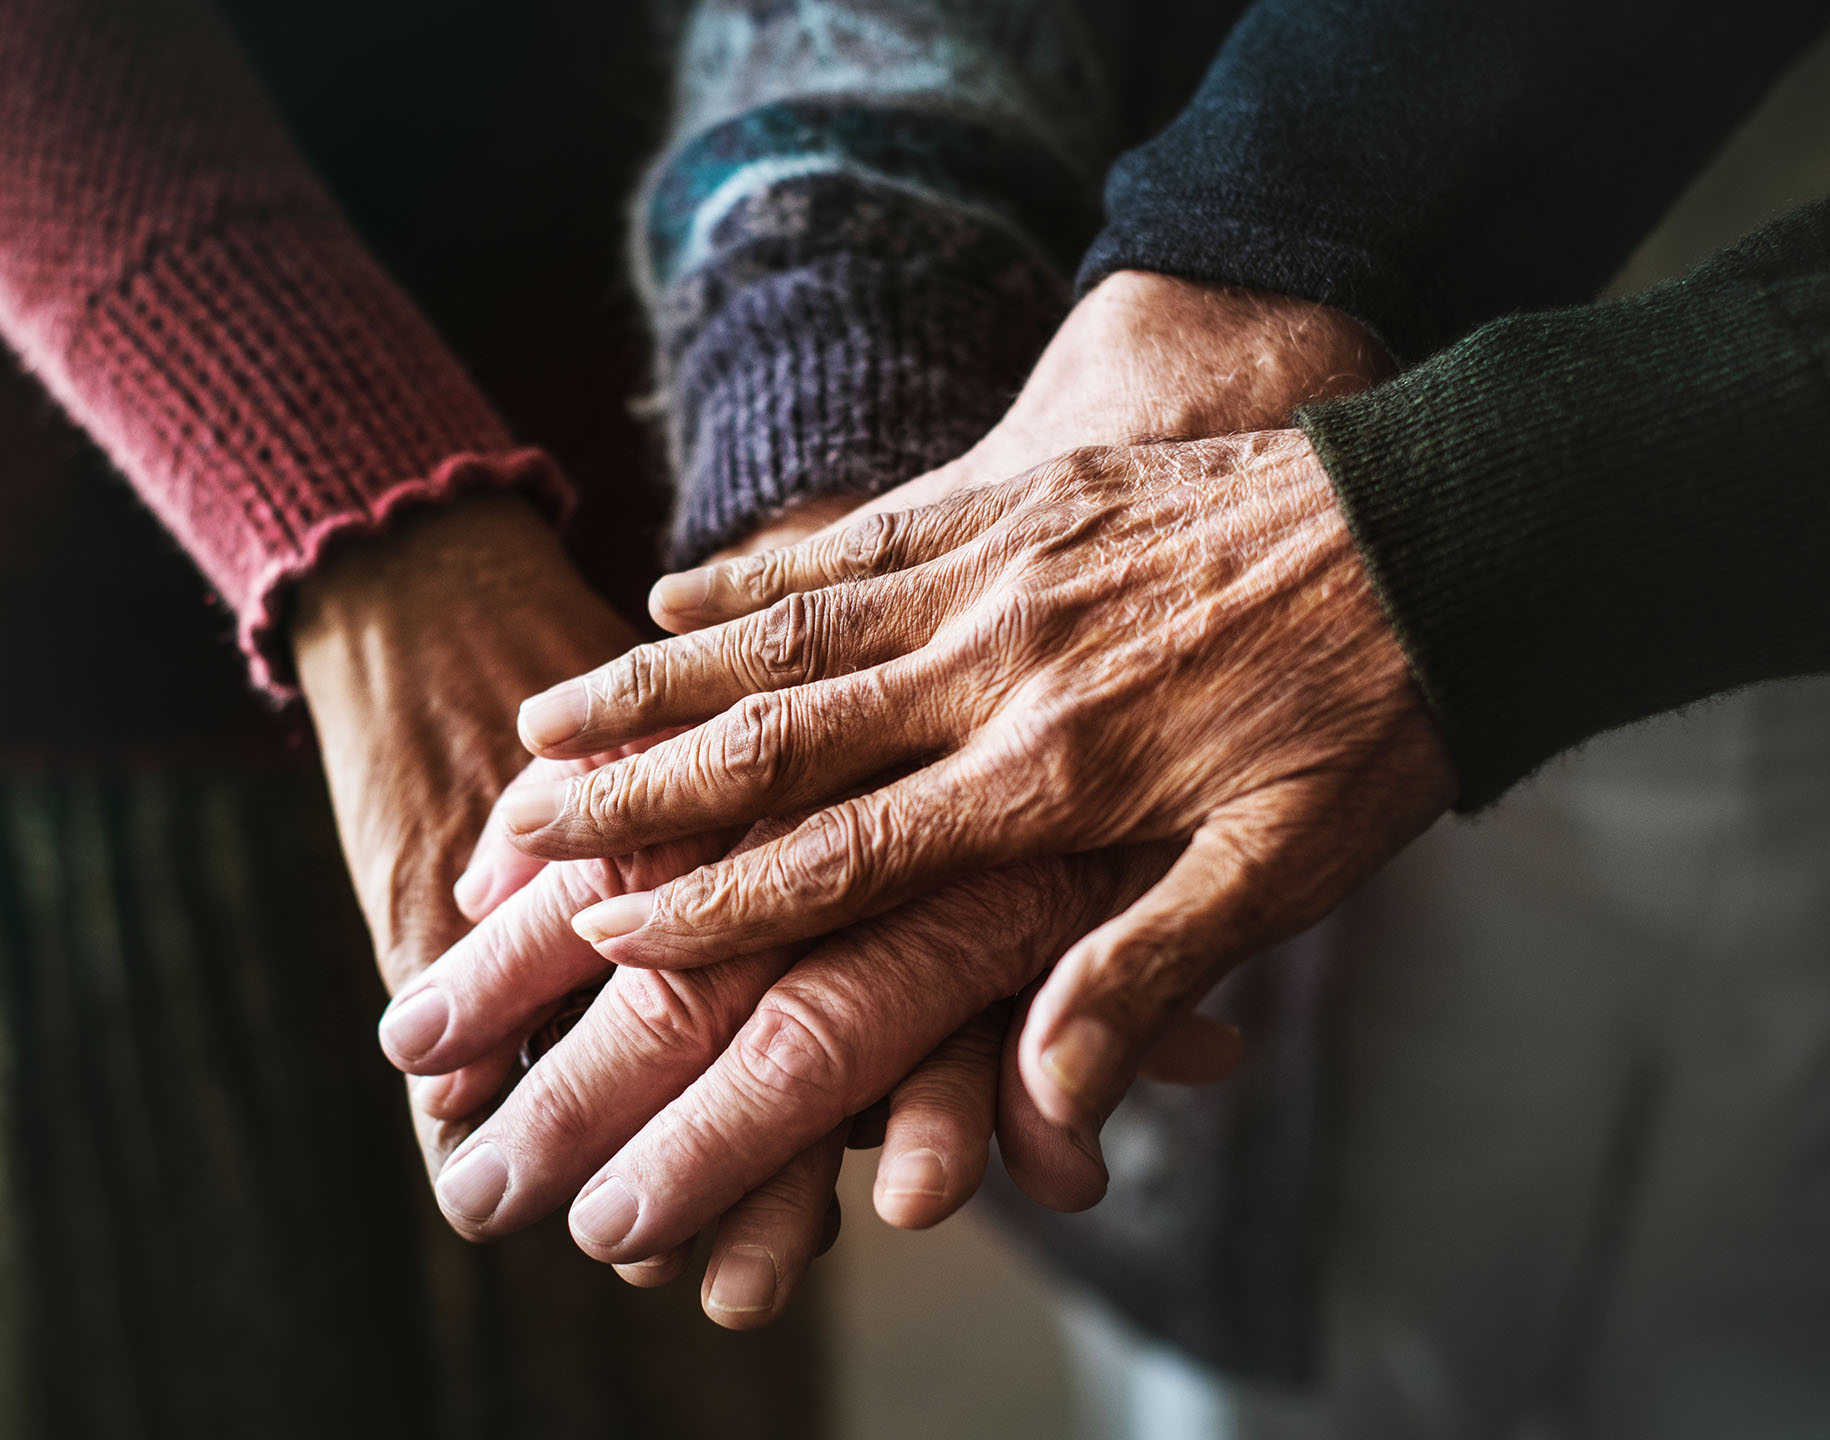 About Our New Jersey Nursing Home Abuse Legal Team